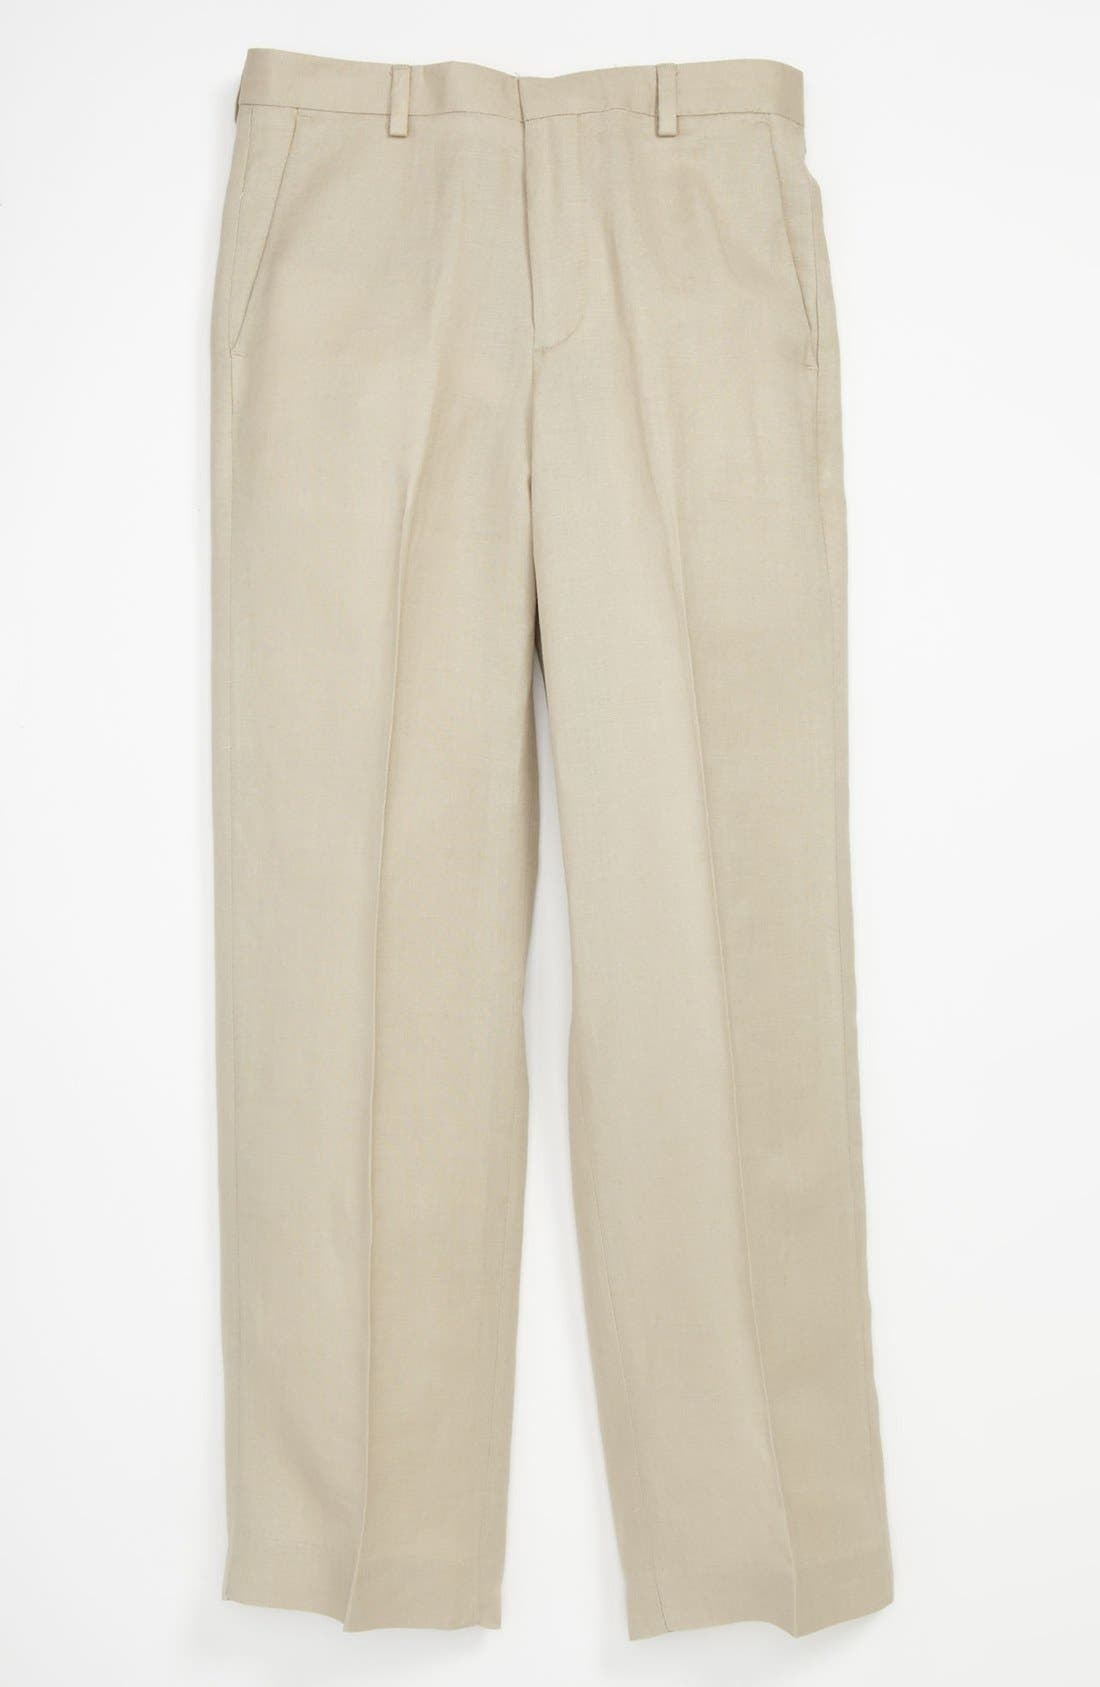 Main Image - Nordstrom 'Phillip' Linen Blend Trousers (Little Boys & Big Boys)